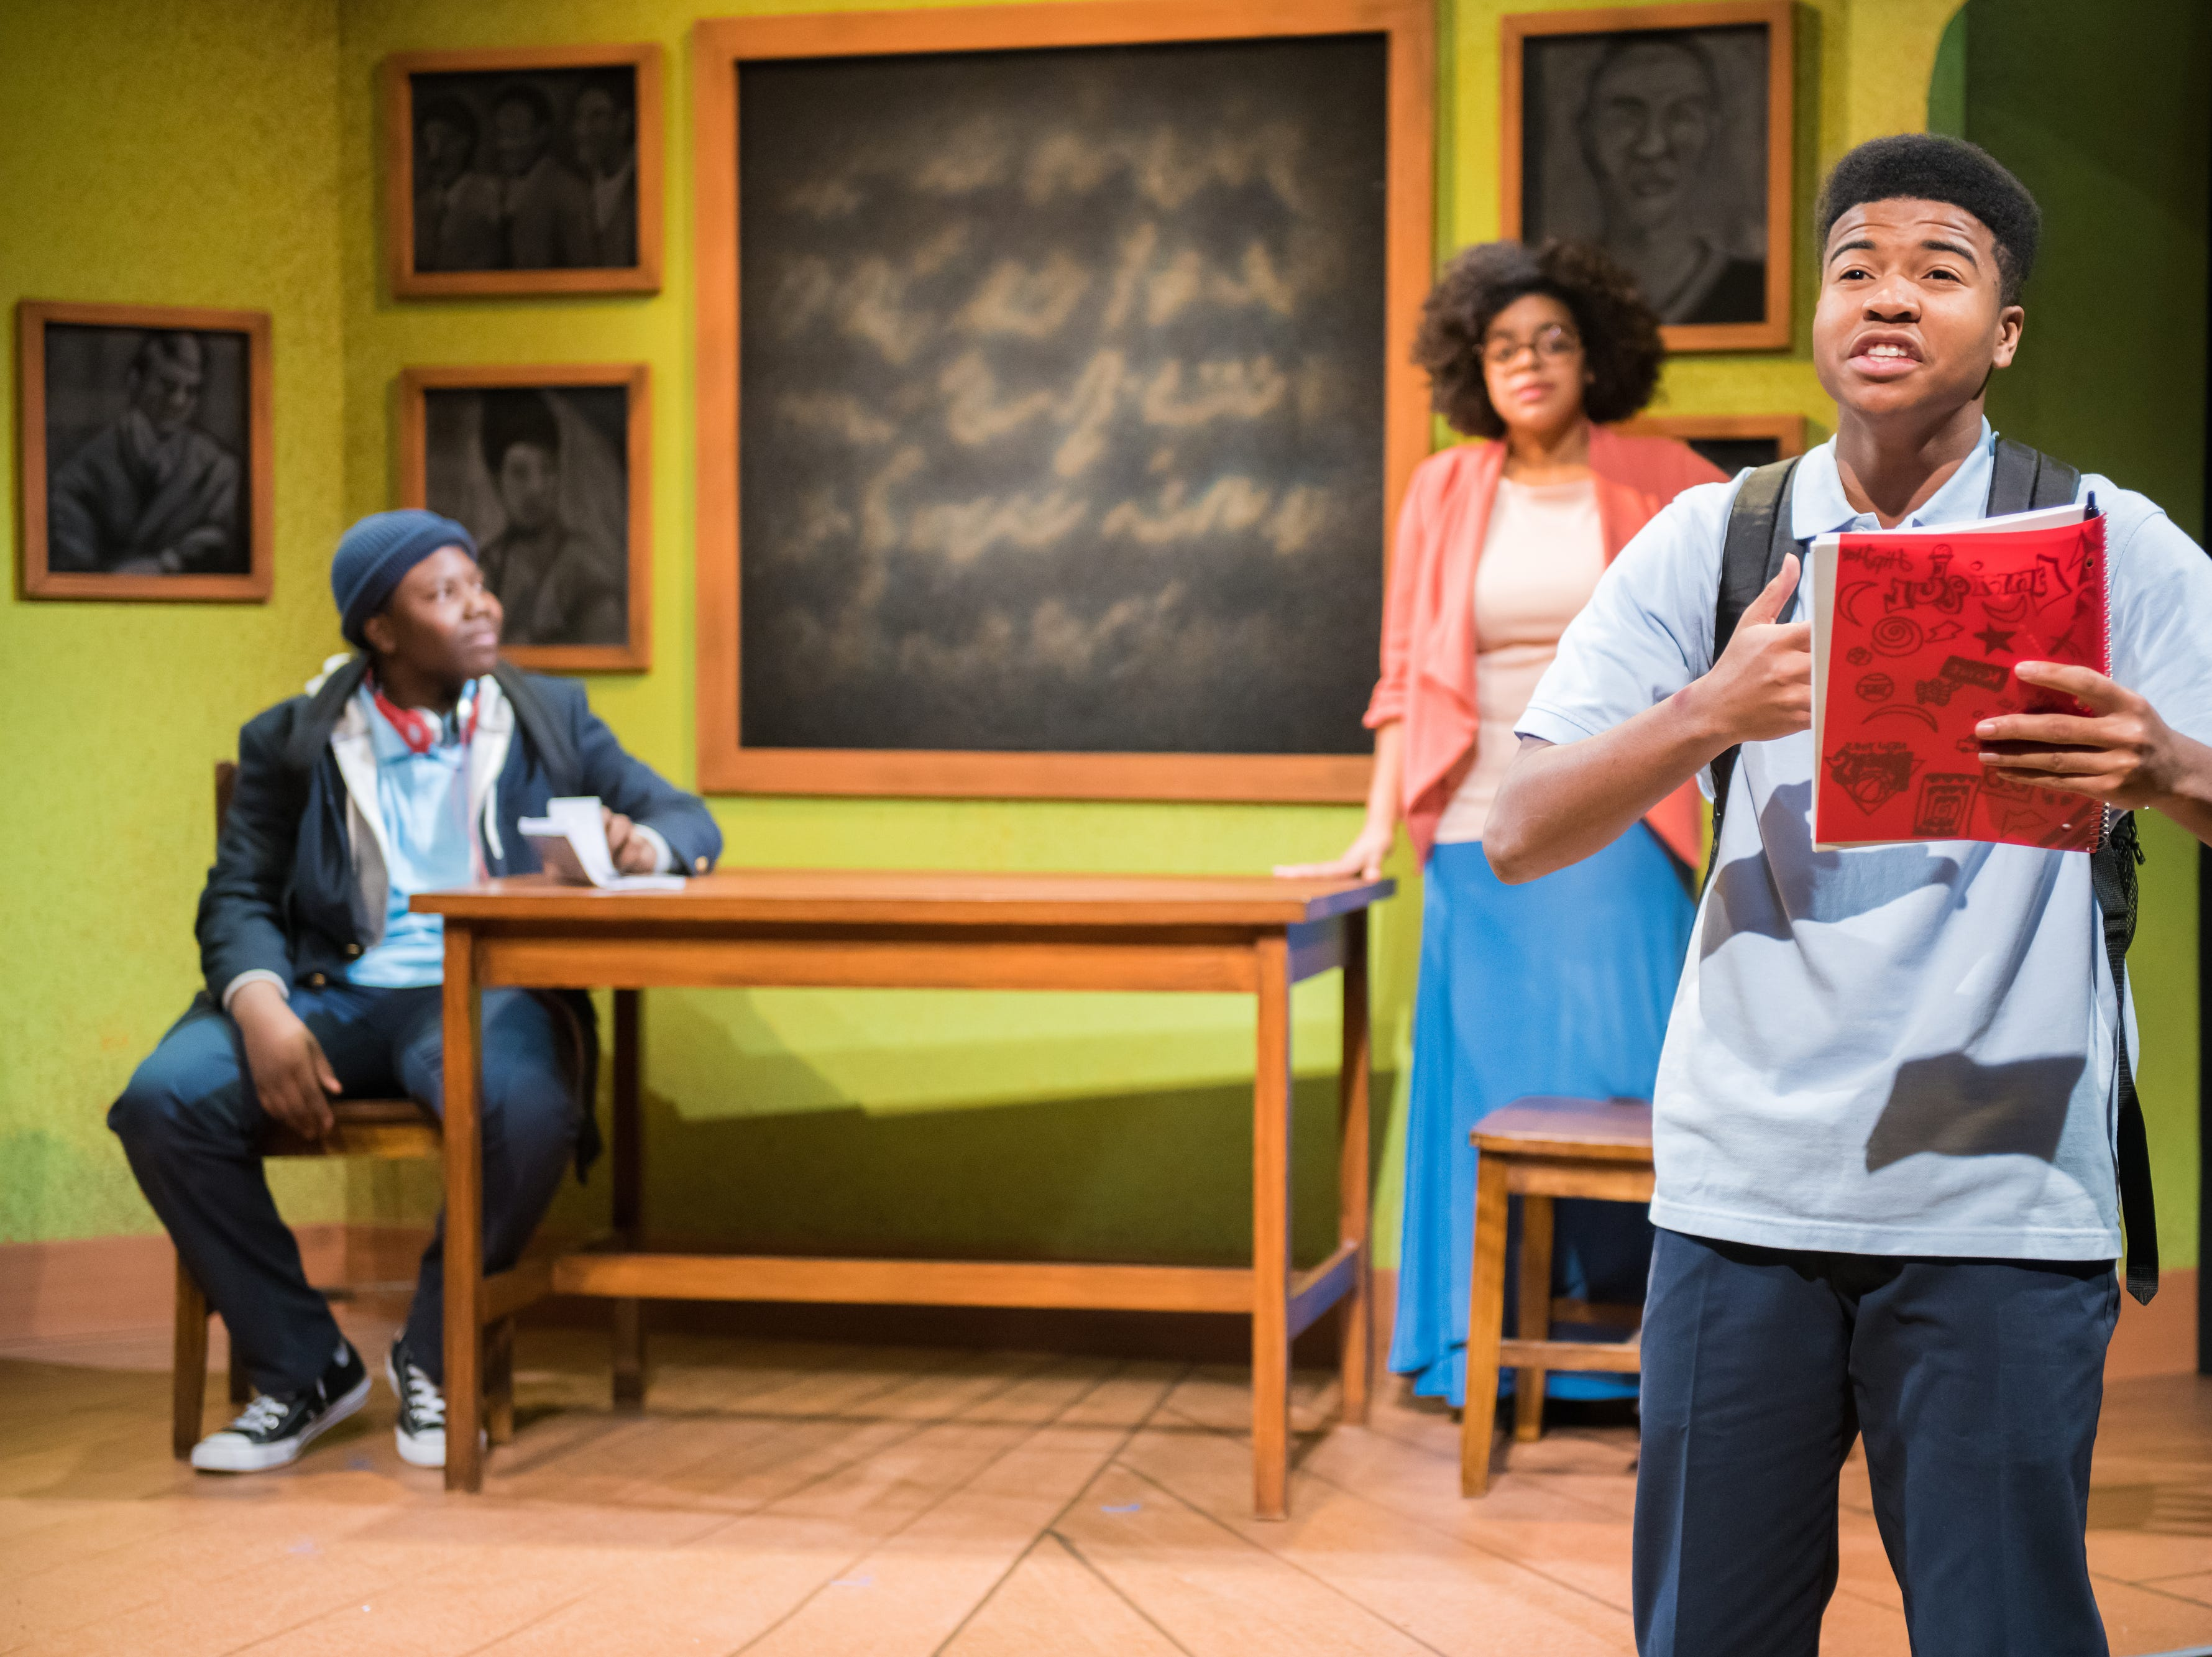 """Nahjee Robinson (front) and Jakobie Jackson and Nadja Simmonds perform in First Stage's production of """"Locomotion"""" by Jacqueline Woodson, which continues through Feb. 24 at the Milwaukee Youth Arts Center, 325 W. Walnut St."""